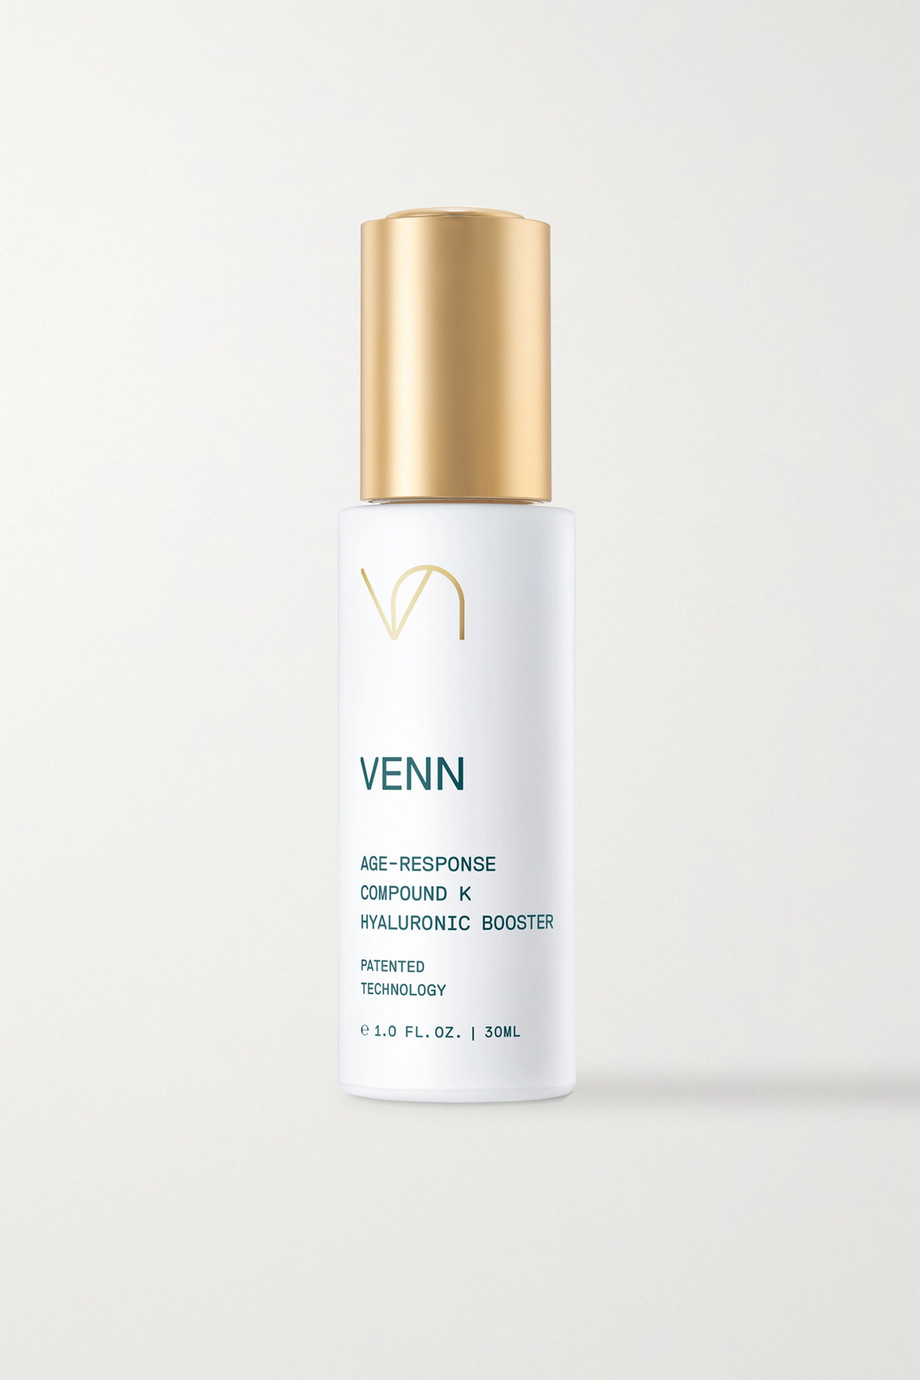 VENN Age-Response Compound K Hyaluronic Booster, 30 ml – Serum